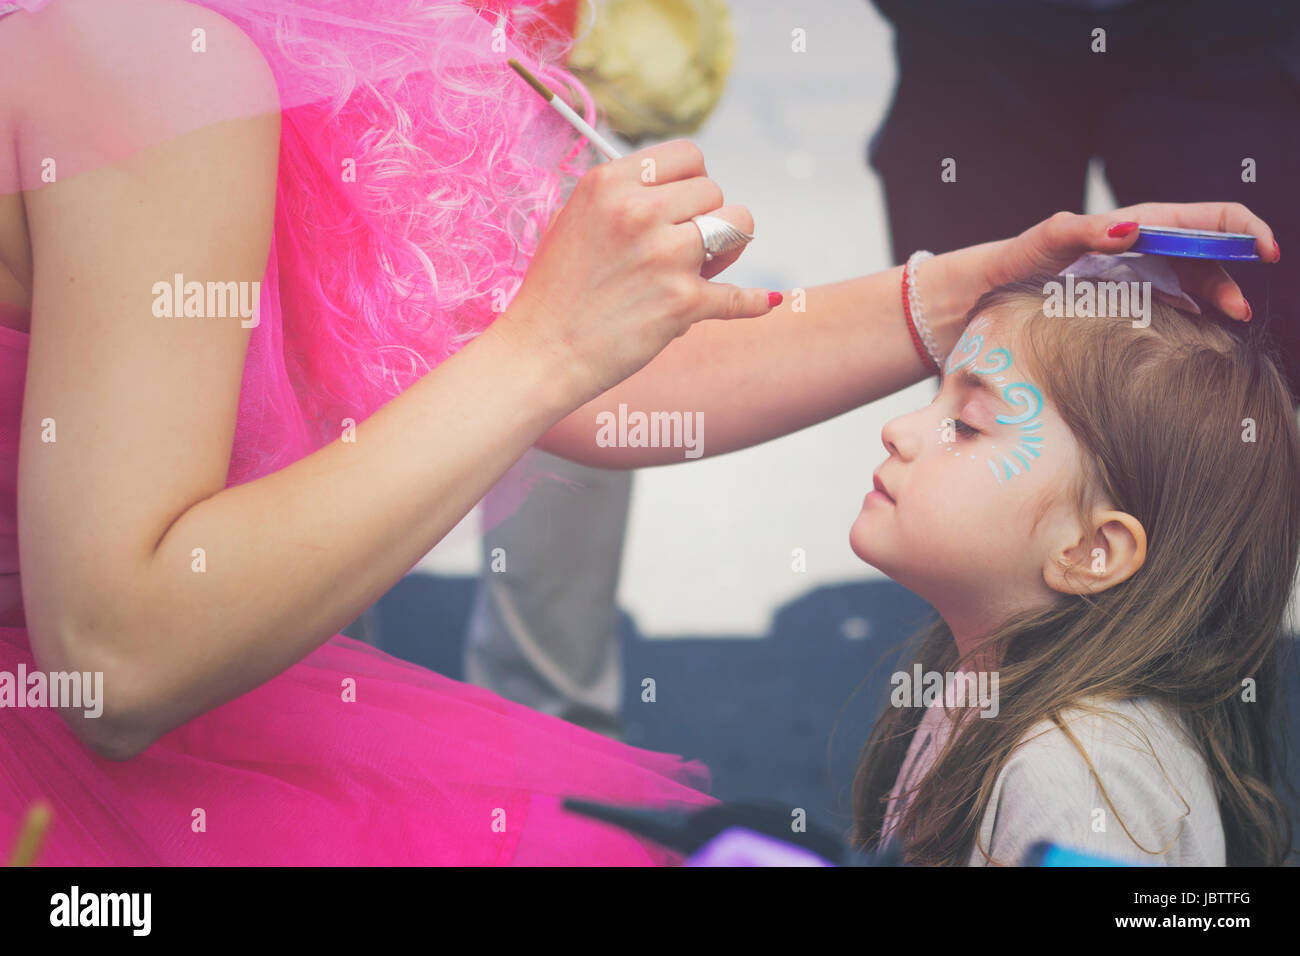 Little girl getting her face painted - Stock Image